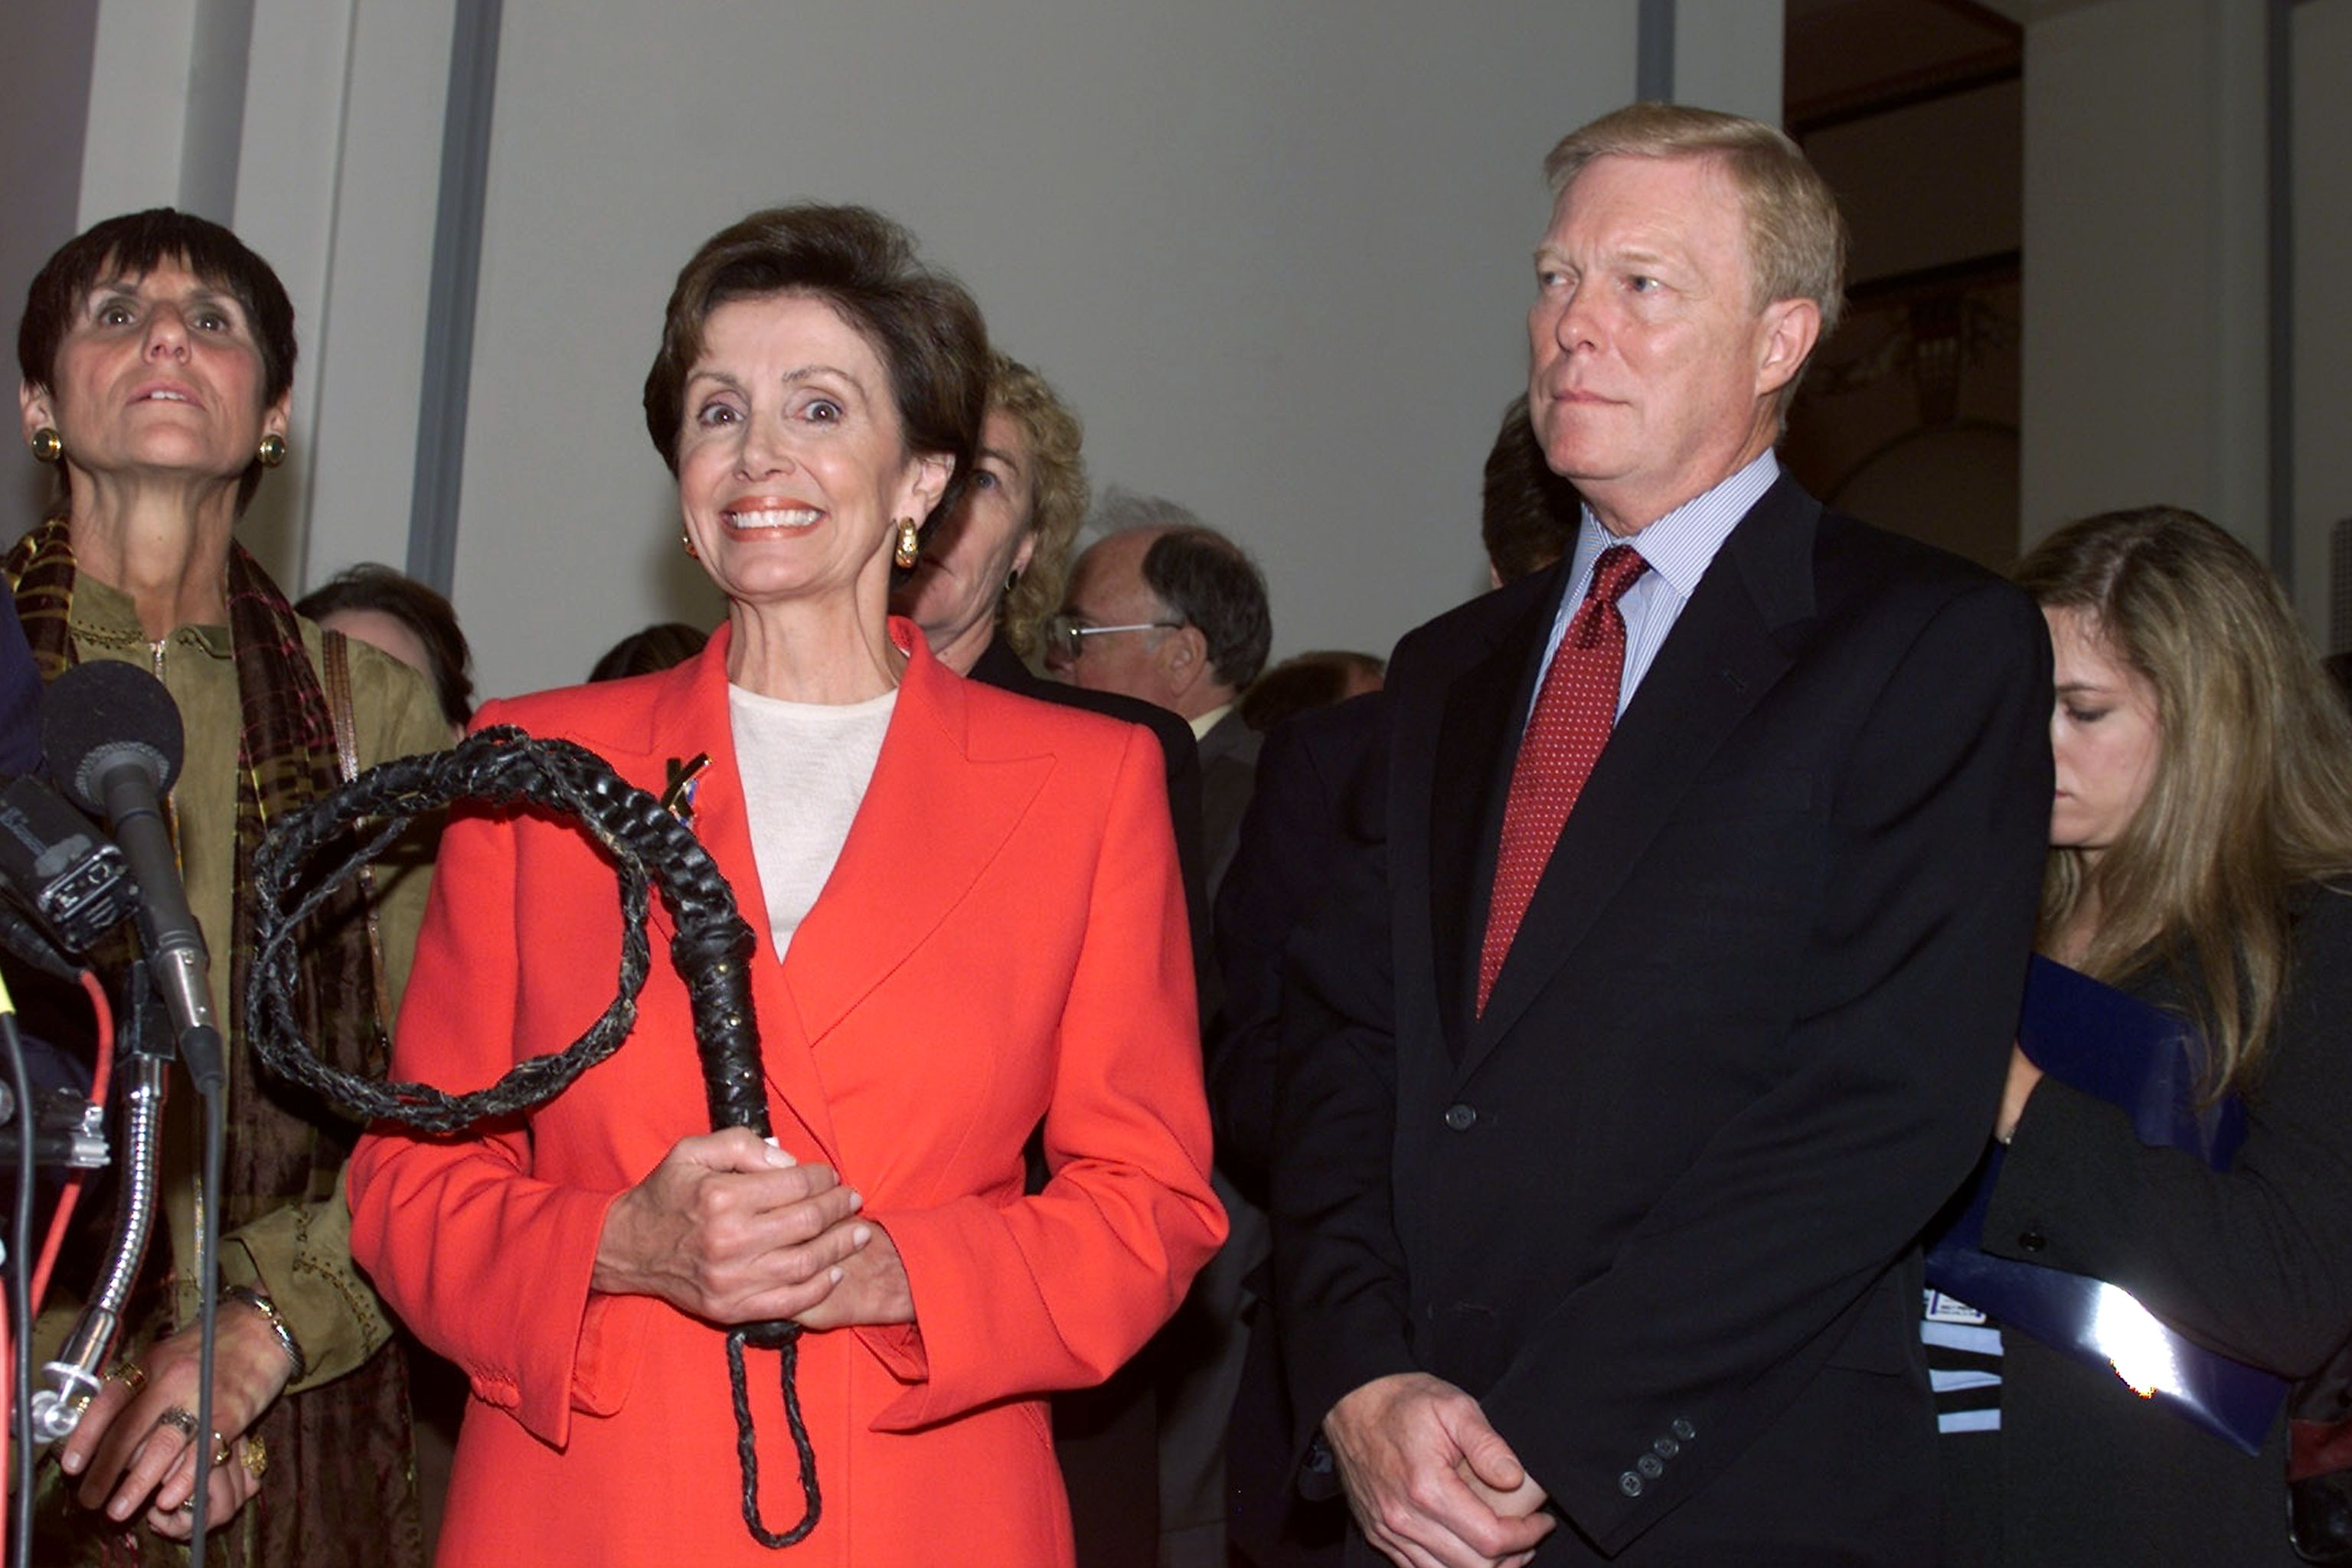 After being elected House Whip in October 2001, Pelosi poses for a very on-theme photo holding an actual whip.